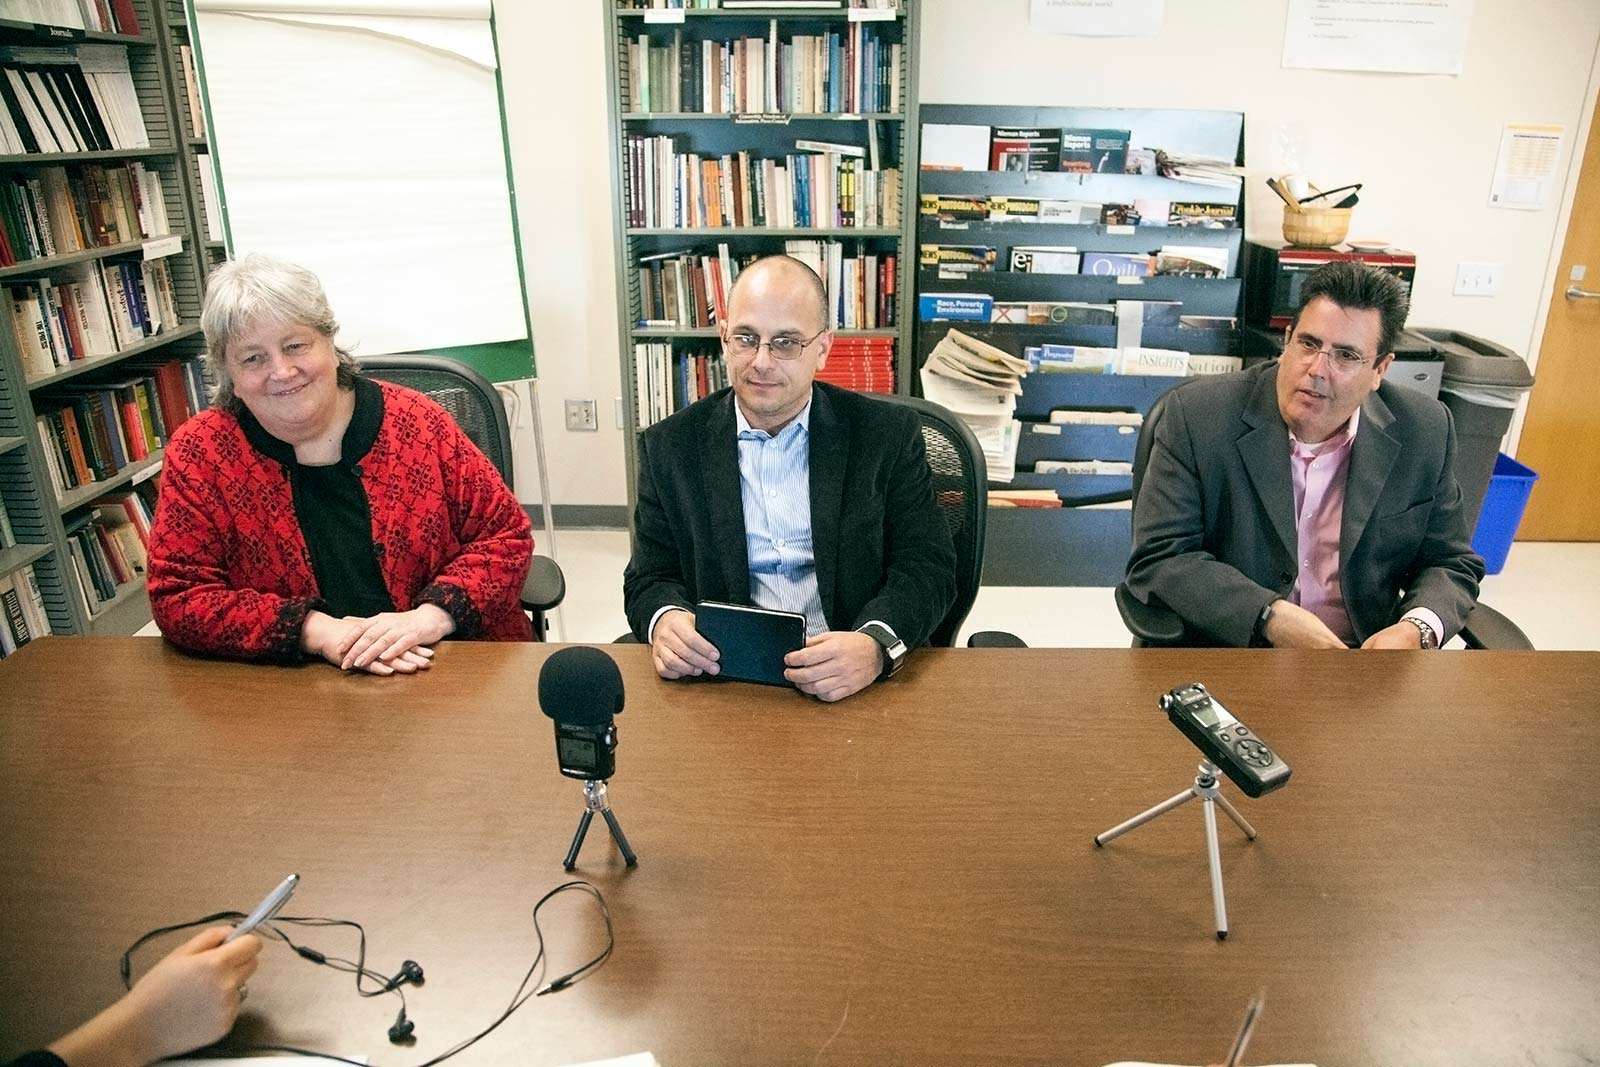 (Left to right) associate dean Susan Shimanoff,  dean Daniel Bernardi and associate dean Todd Roehrman, the dean staff of the college of liberal and creative arts, field questions from Xpress staff members during a formal interview Wednesday Dec. 3.  Martin Bustamante/Xpress